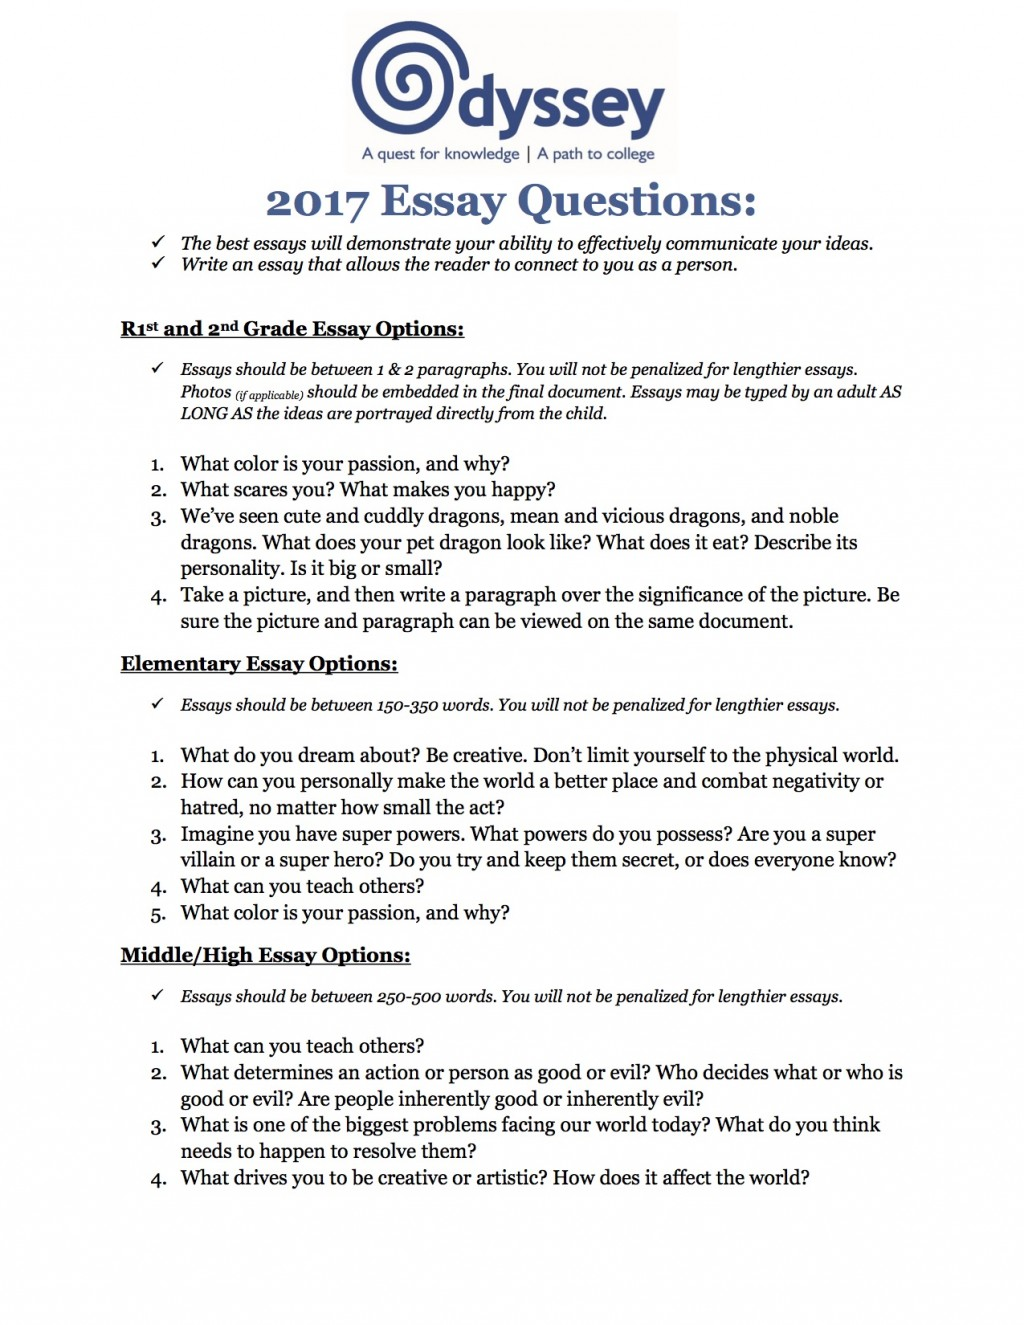 008 Student Essay Example The Odyssey Topics Greek Family How To Good Awesome Template Prompts Bad Examples Large